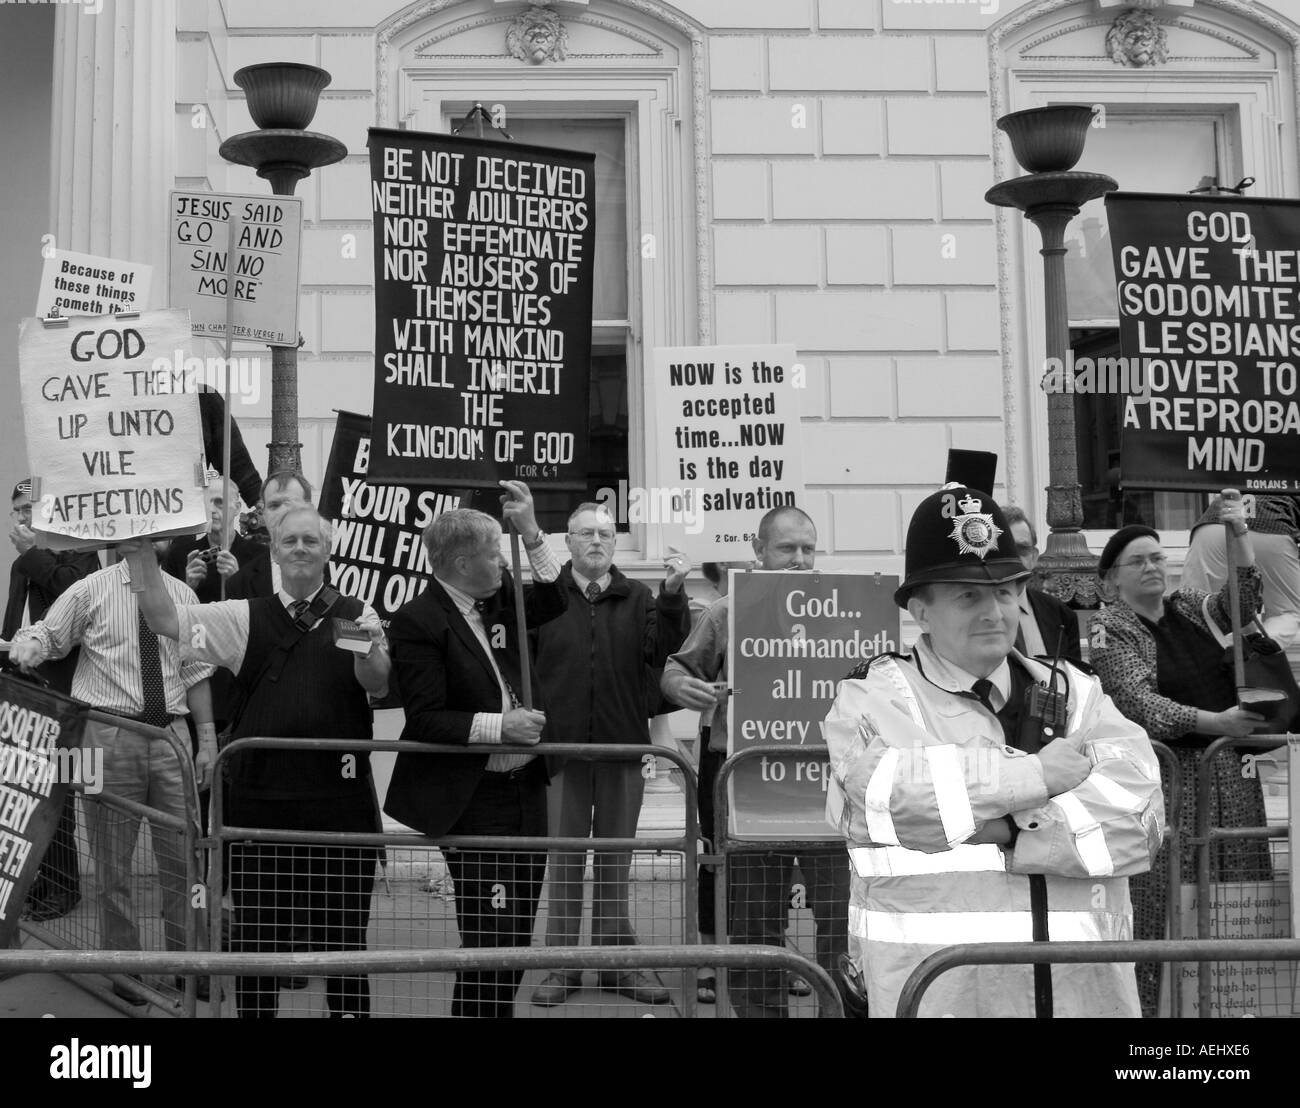 Protesters at London Gay Pride July 2005 - Stock Image